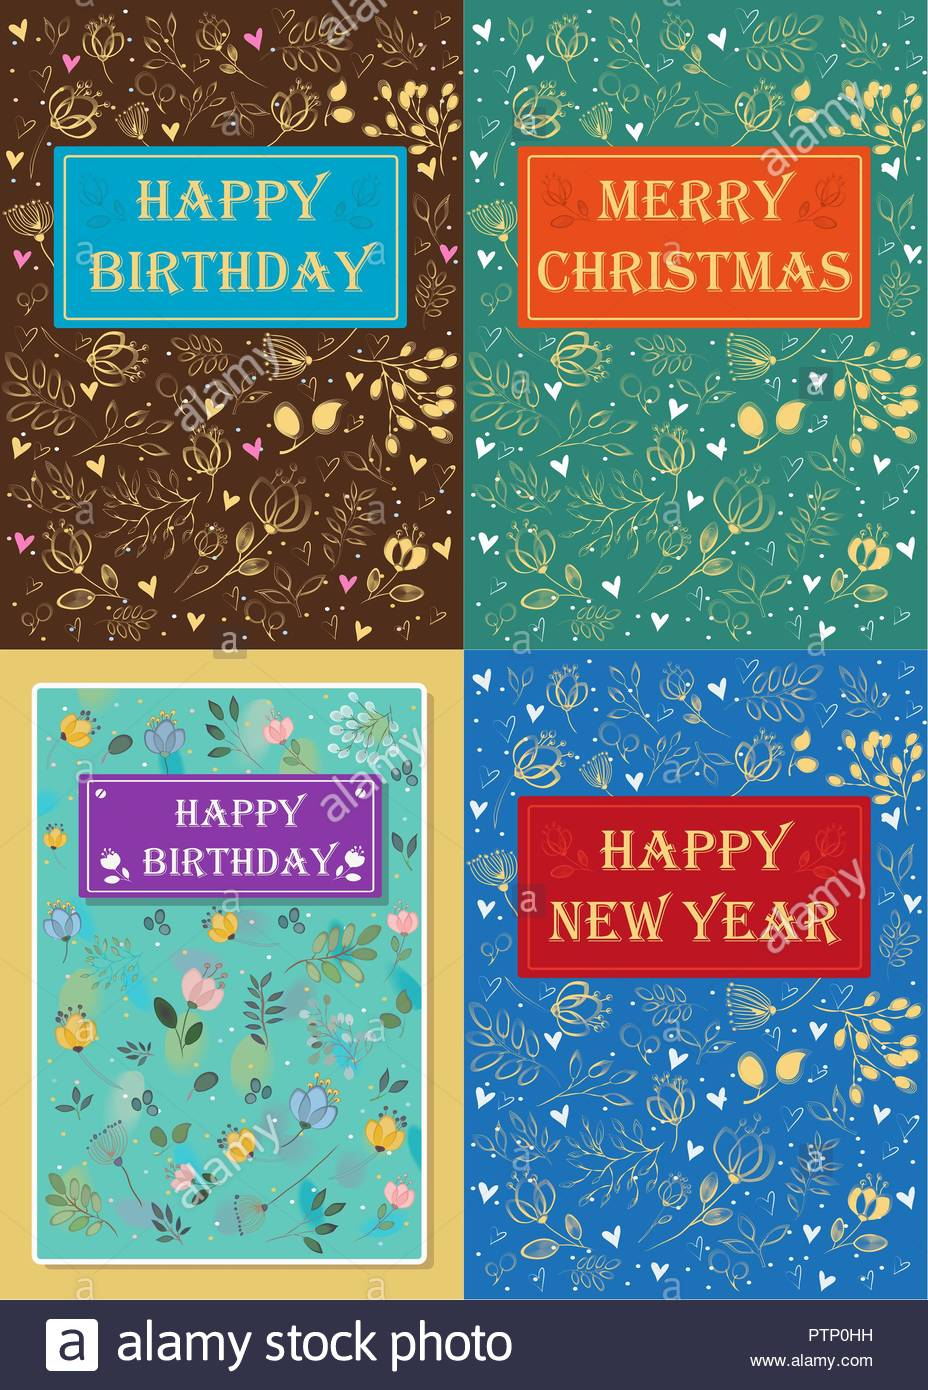 set of floral greeting cards happy birthday new year merry christmas graceful